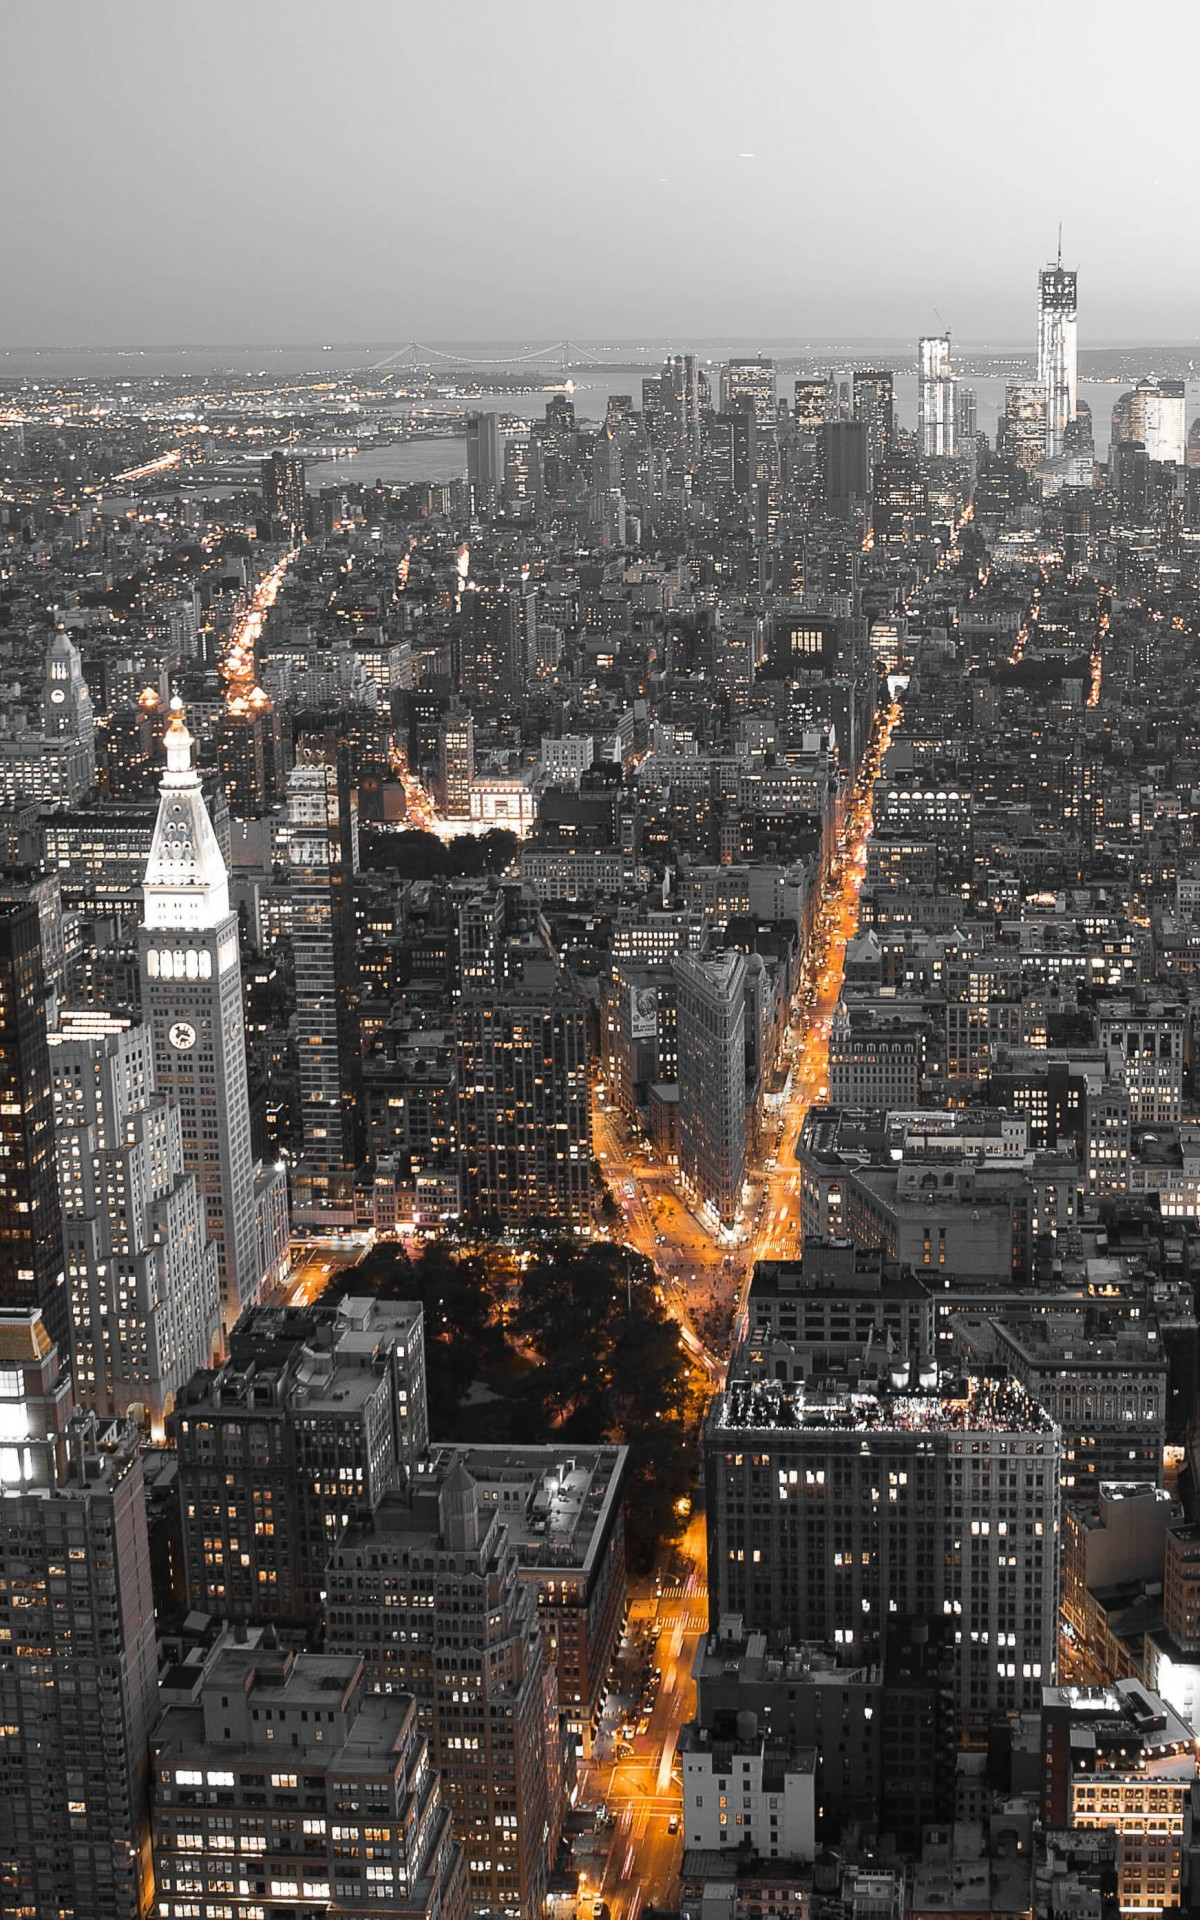 New York City by Night Wallpaper for Amazon Kindle Fire HDX